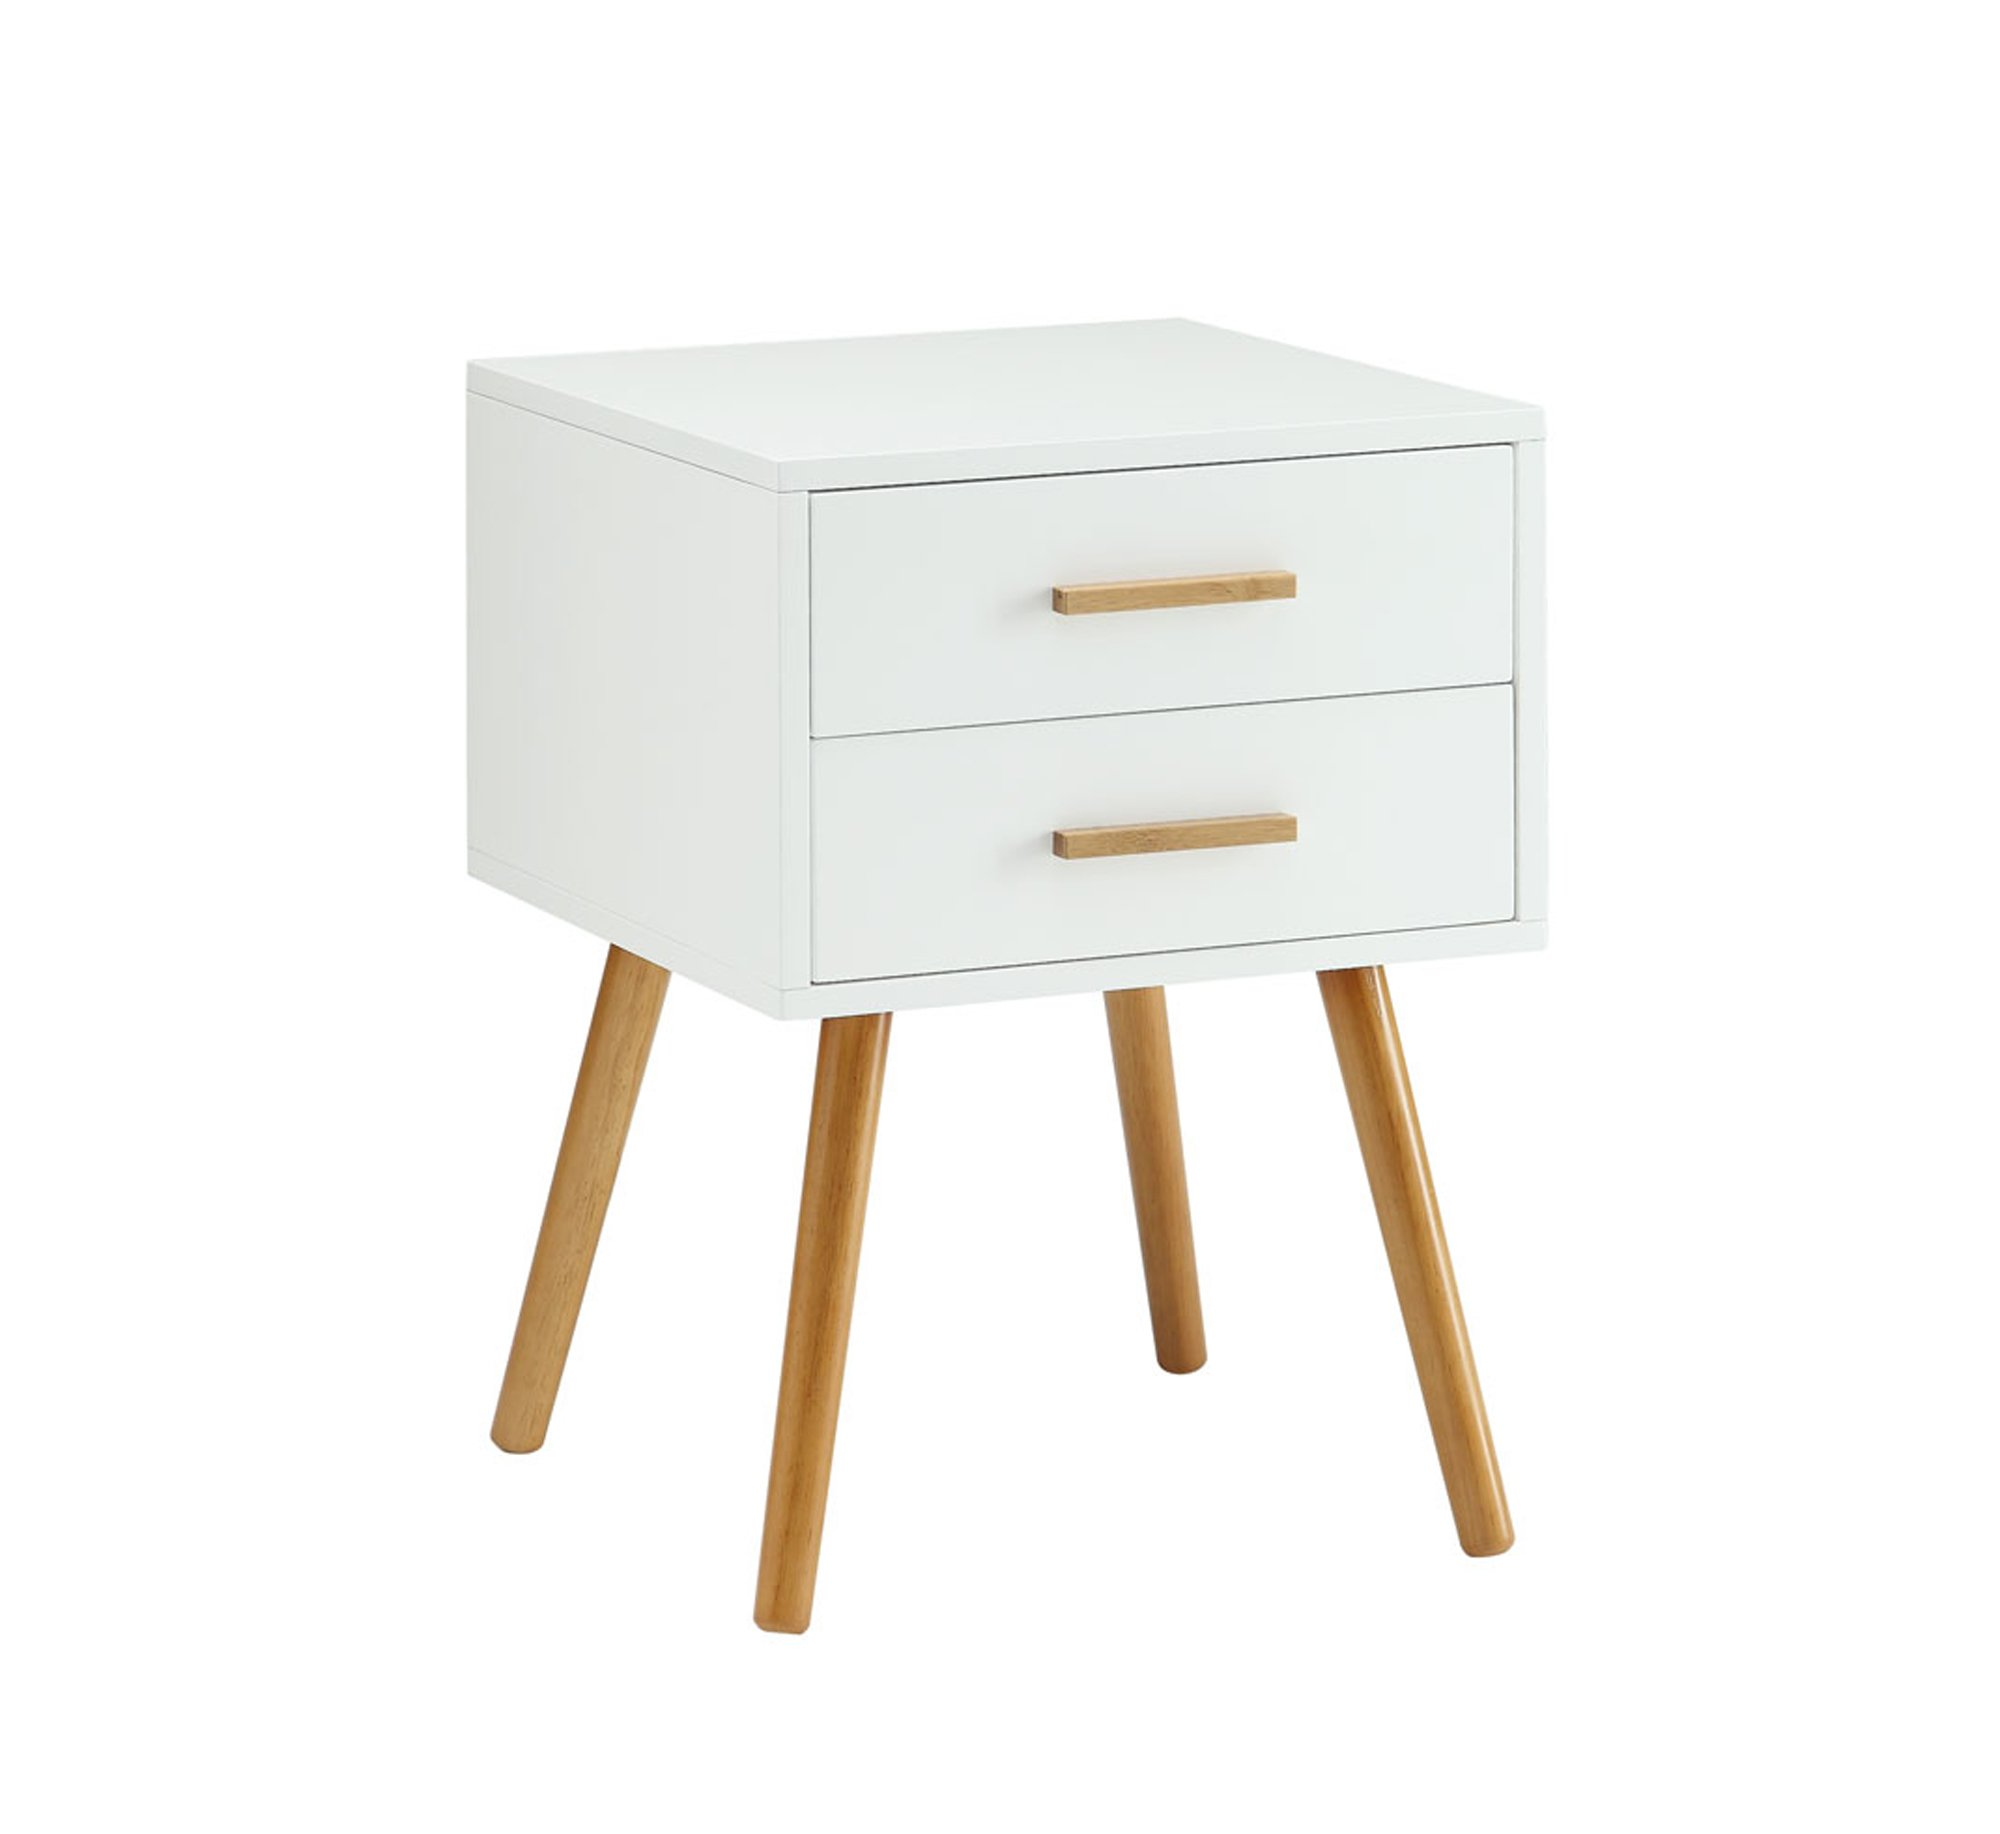 Convenience Concepts Oslo 2 Drawer End Table, White - Part of the Oslo Collection by Convenience Concepts Boasts a mid-century style to update any home decor Crafted from MDF/rubberwood/non-lead based paint/bamboo - living-room-furniture, living-room, end-tables - 61HLj2YVp2L -